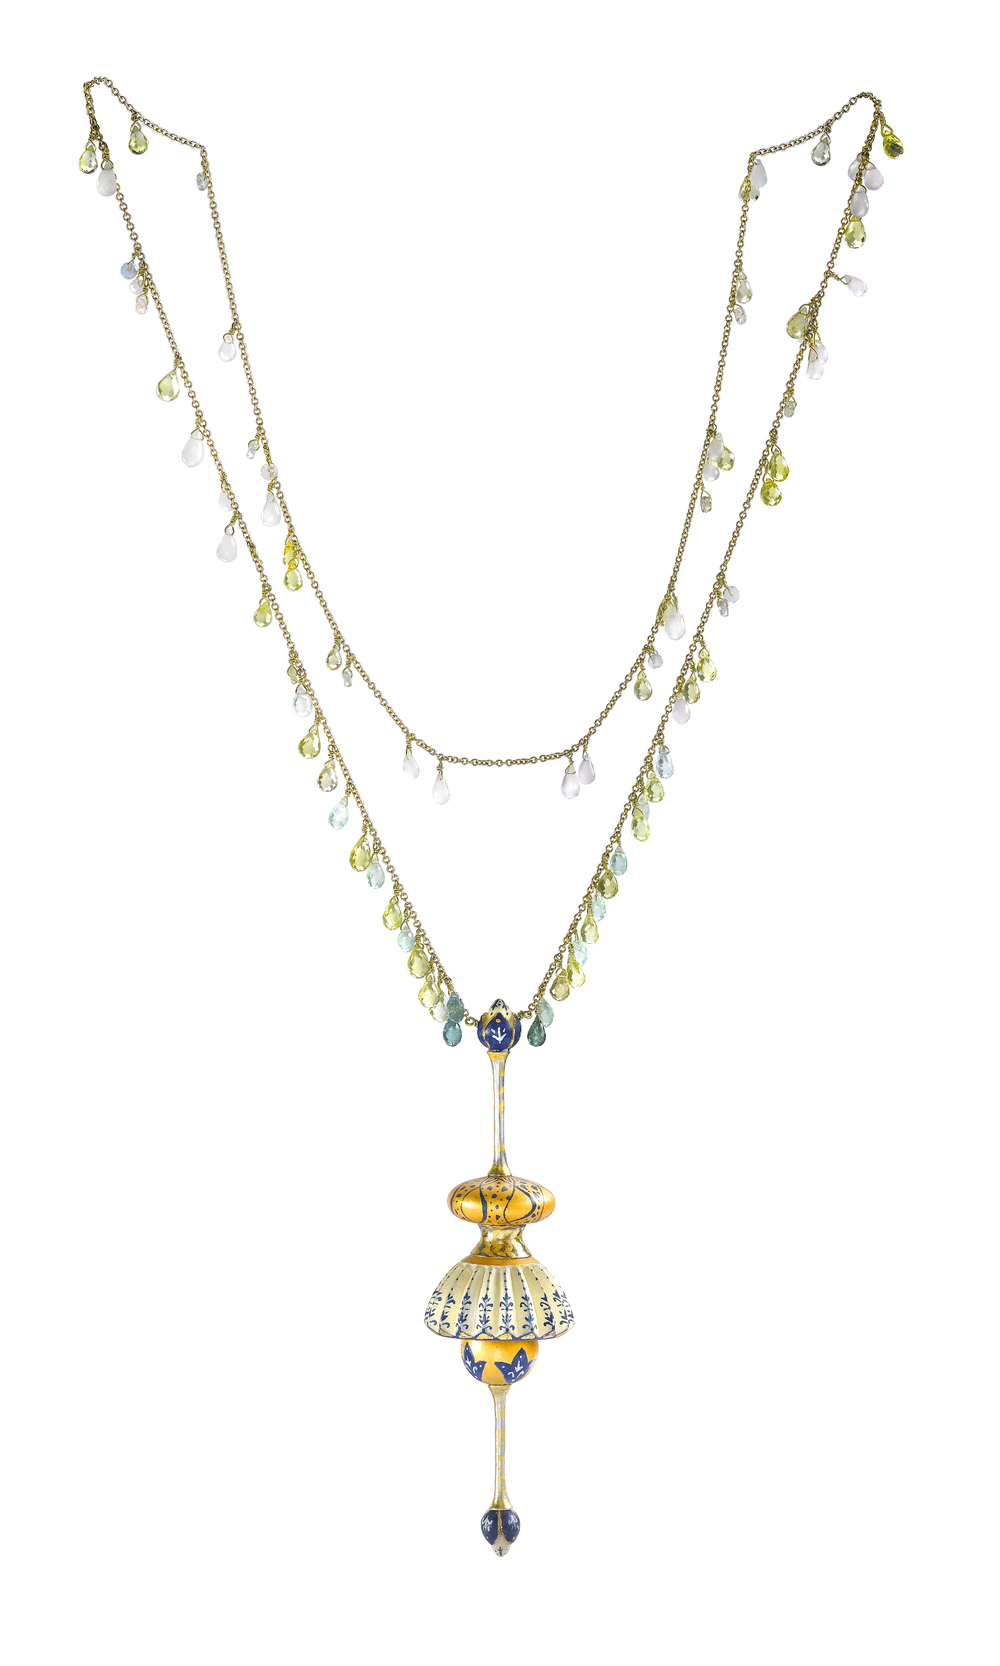 Afghan Temple Shinkara Sautoir; 18ct yellow gold chain, strung with white sapphires, chalcedony, lemon quartz and blue tourmaline, supports a pendant of carved maple and fine silver, painted in Kabul, and gilded in London.